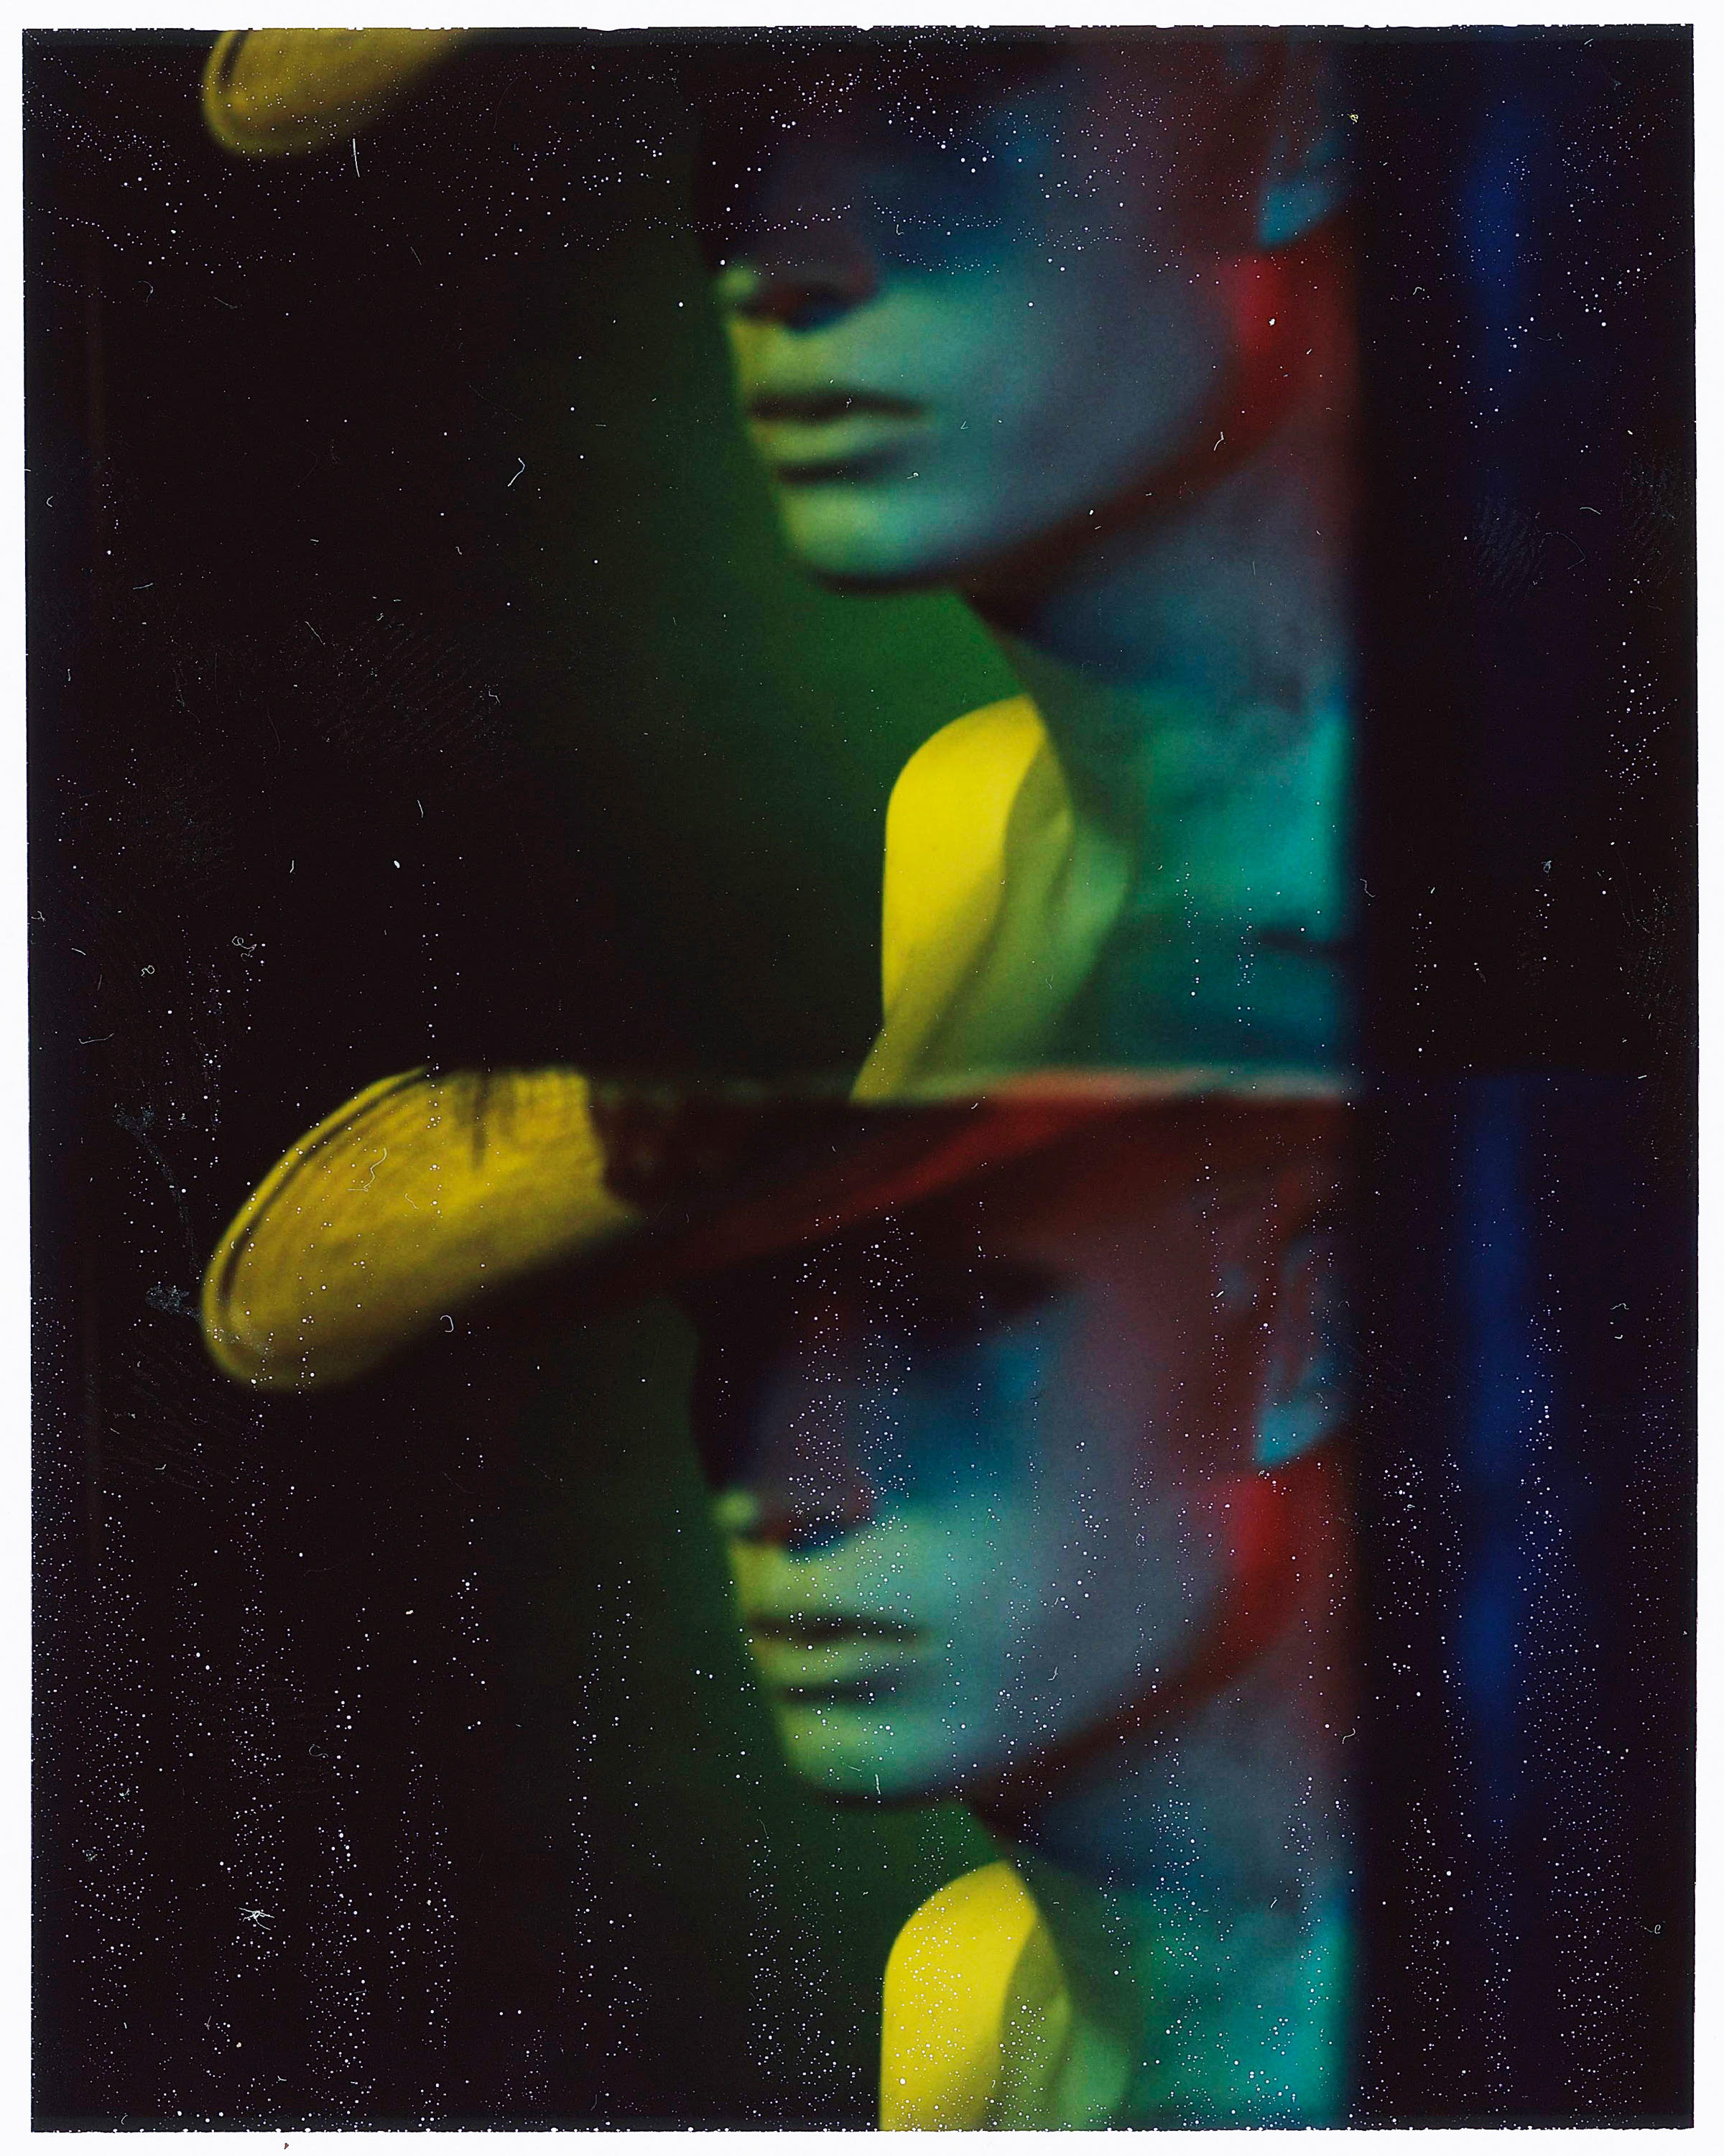 """Jer Nelsen  •Marion, IN   This is a Polaroid of a white window model with a Western hat/feather combo. The Image is shot with a passport camera in the studio. When I think of """"Western"""" I think of both consumerist vice and adventure, as well as freedom, so this is a mix of all of those things mashed into one."""